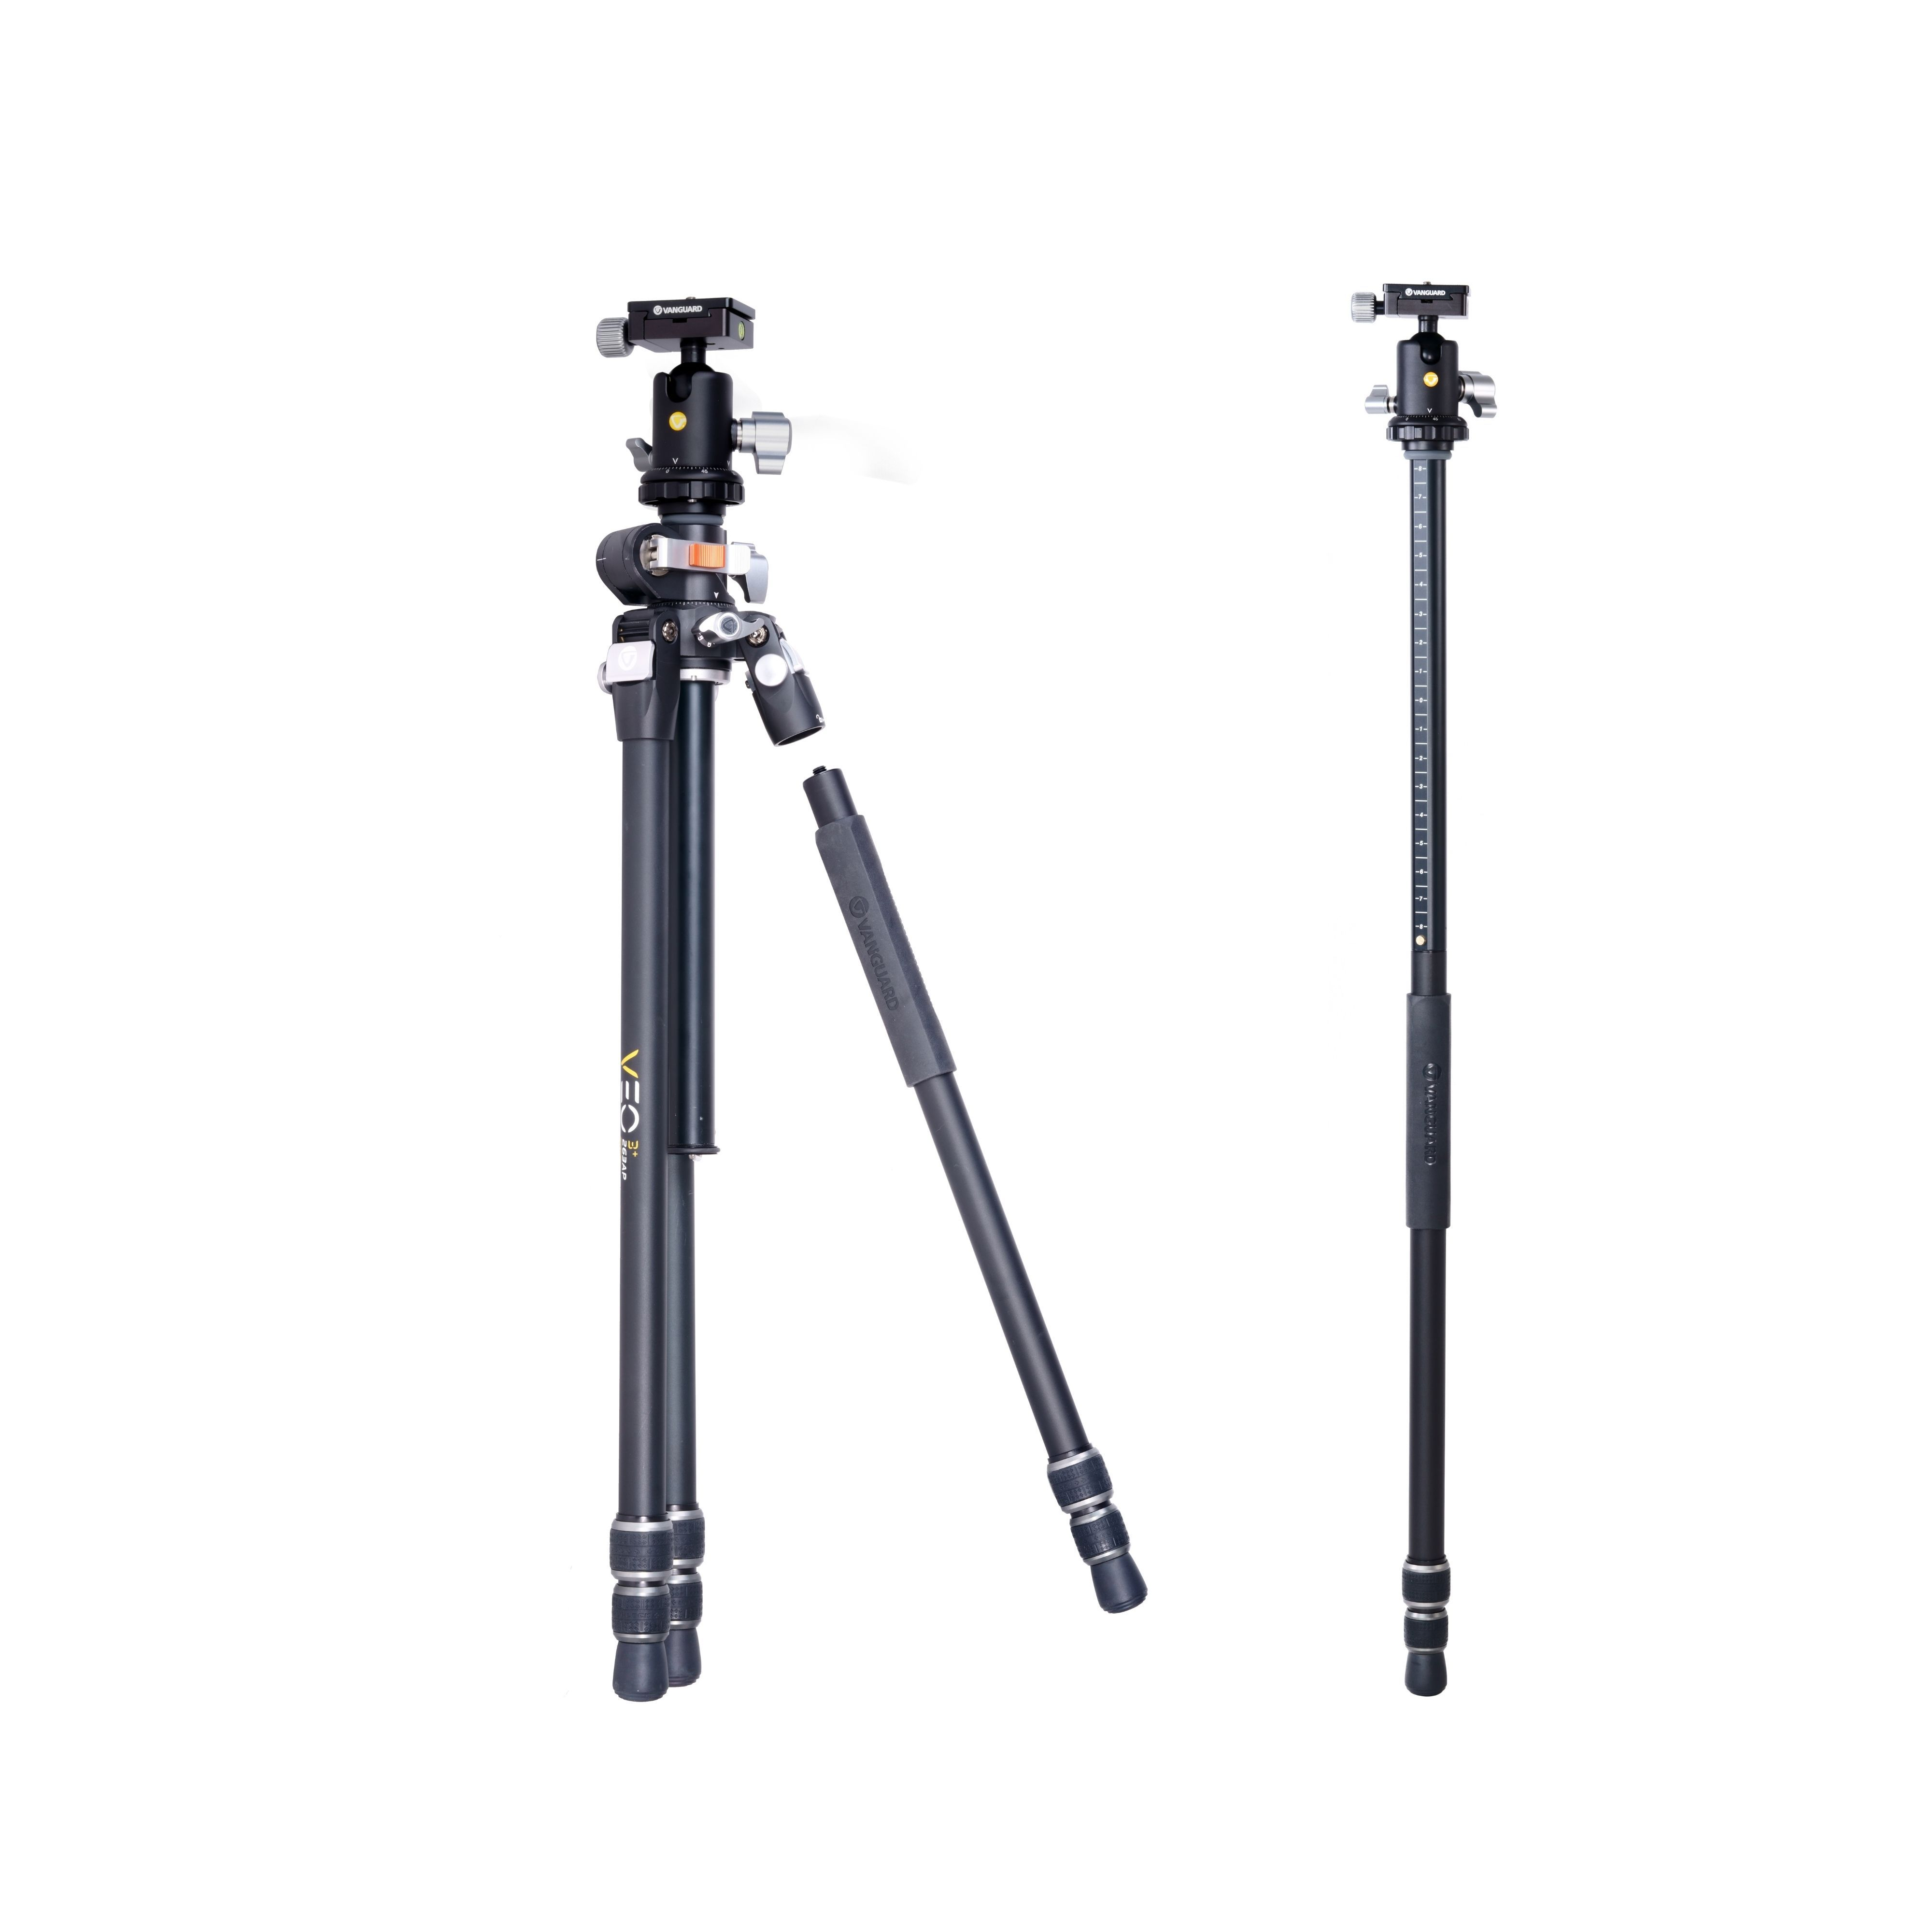 Setting Up The Monopod On The VEO 3+ Demo Video